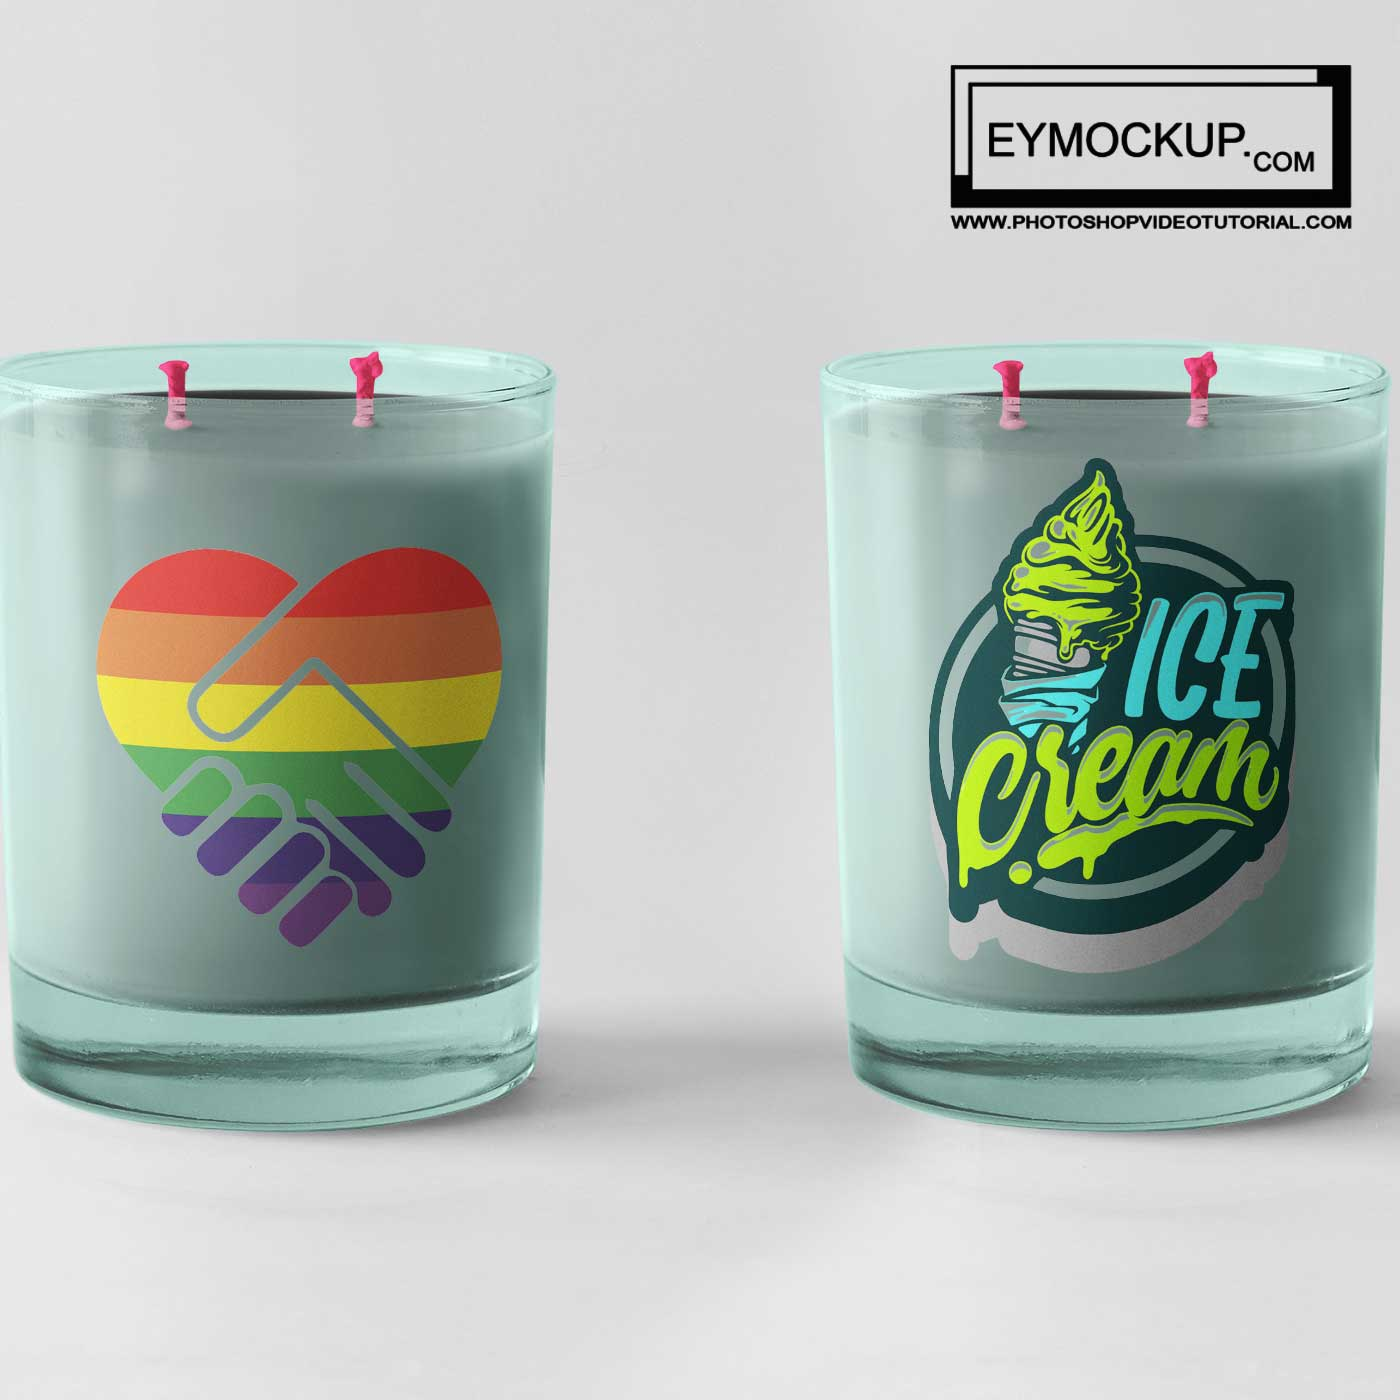 Night Candle Dinner Mockups